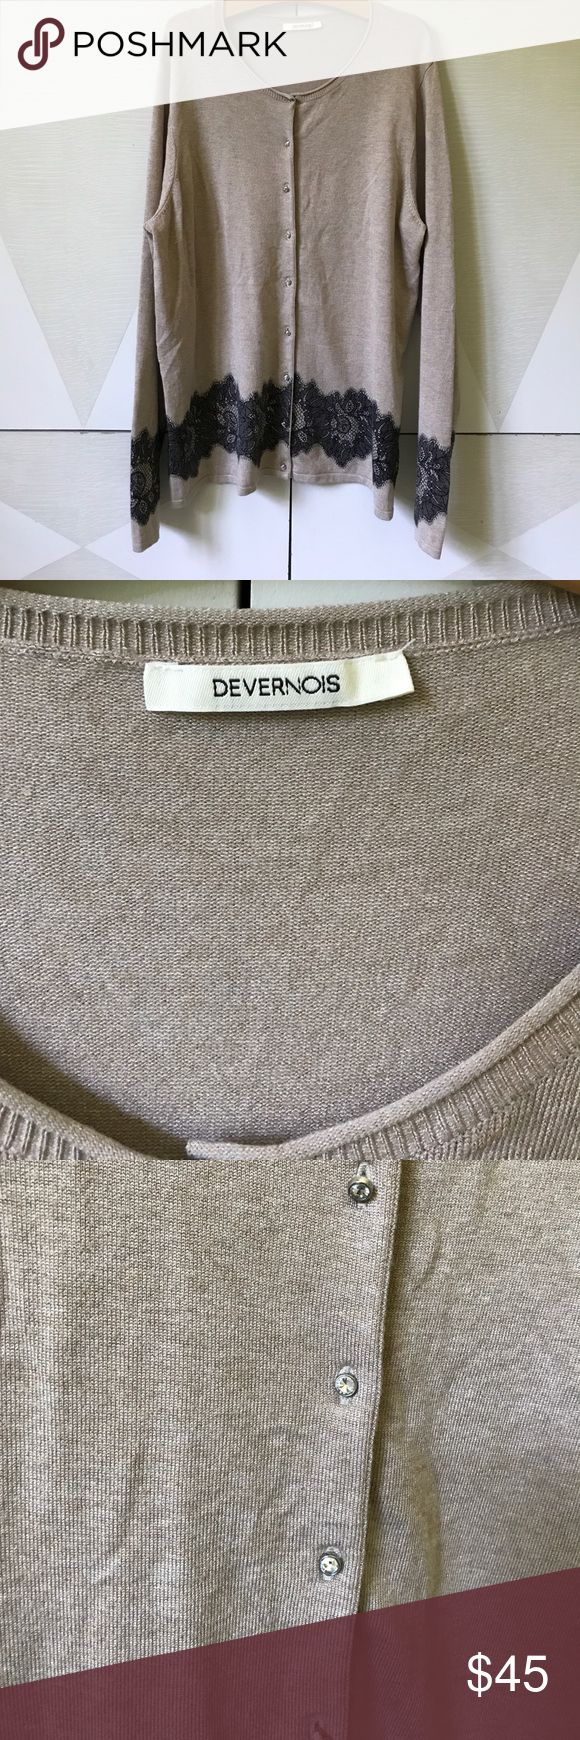 Devernois France thin cardigan  beige size 3 NWOT Devernois Sweaters Cardigans